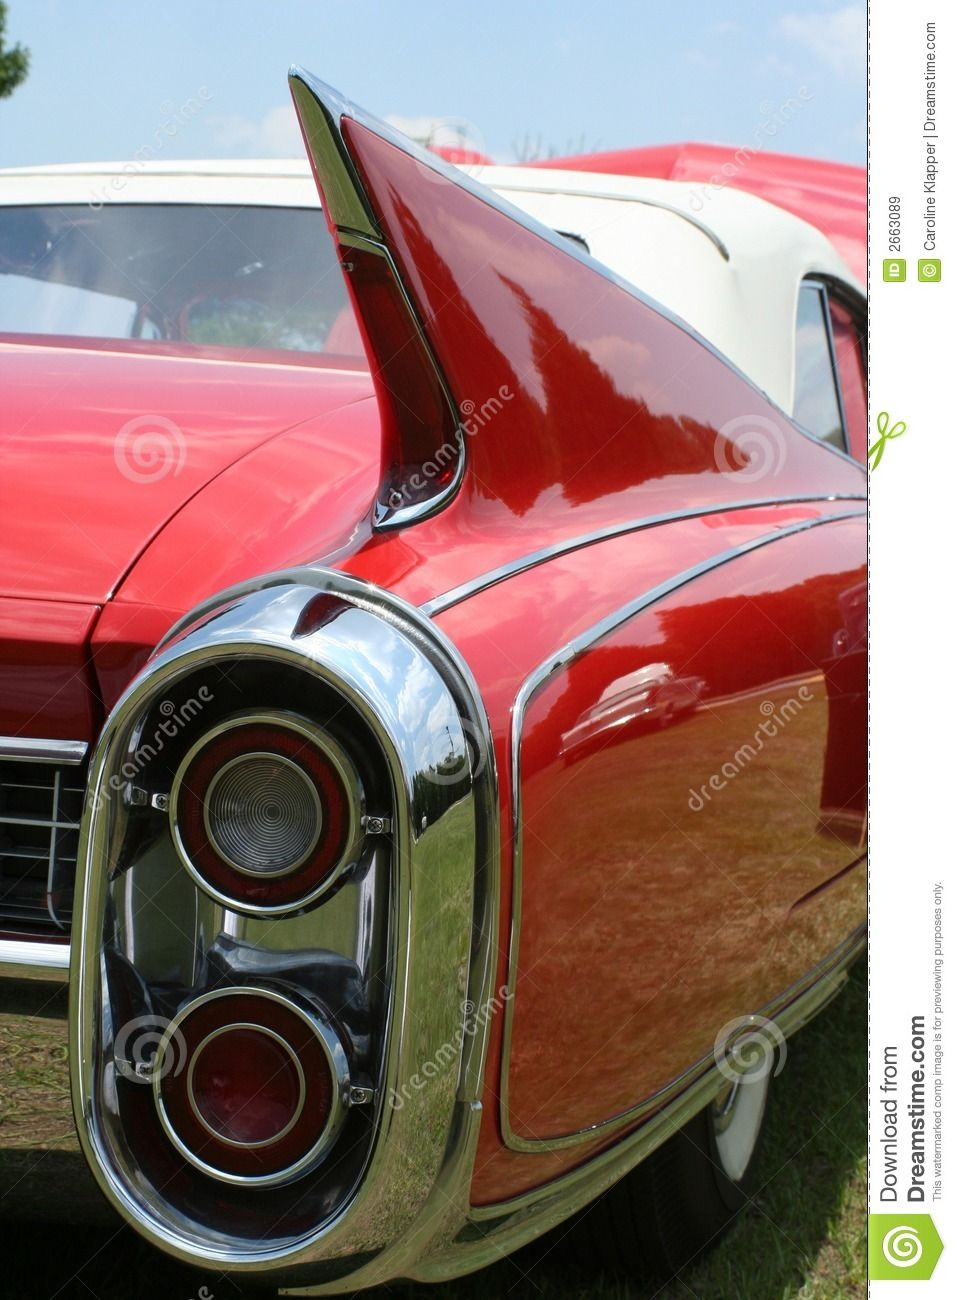 photos of vintage car tail lights - Google Search   GRILLES & TAIL ...